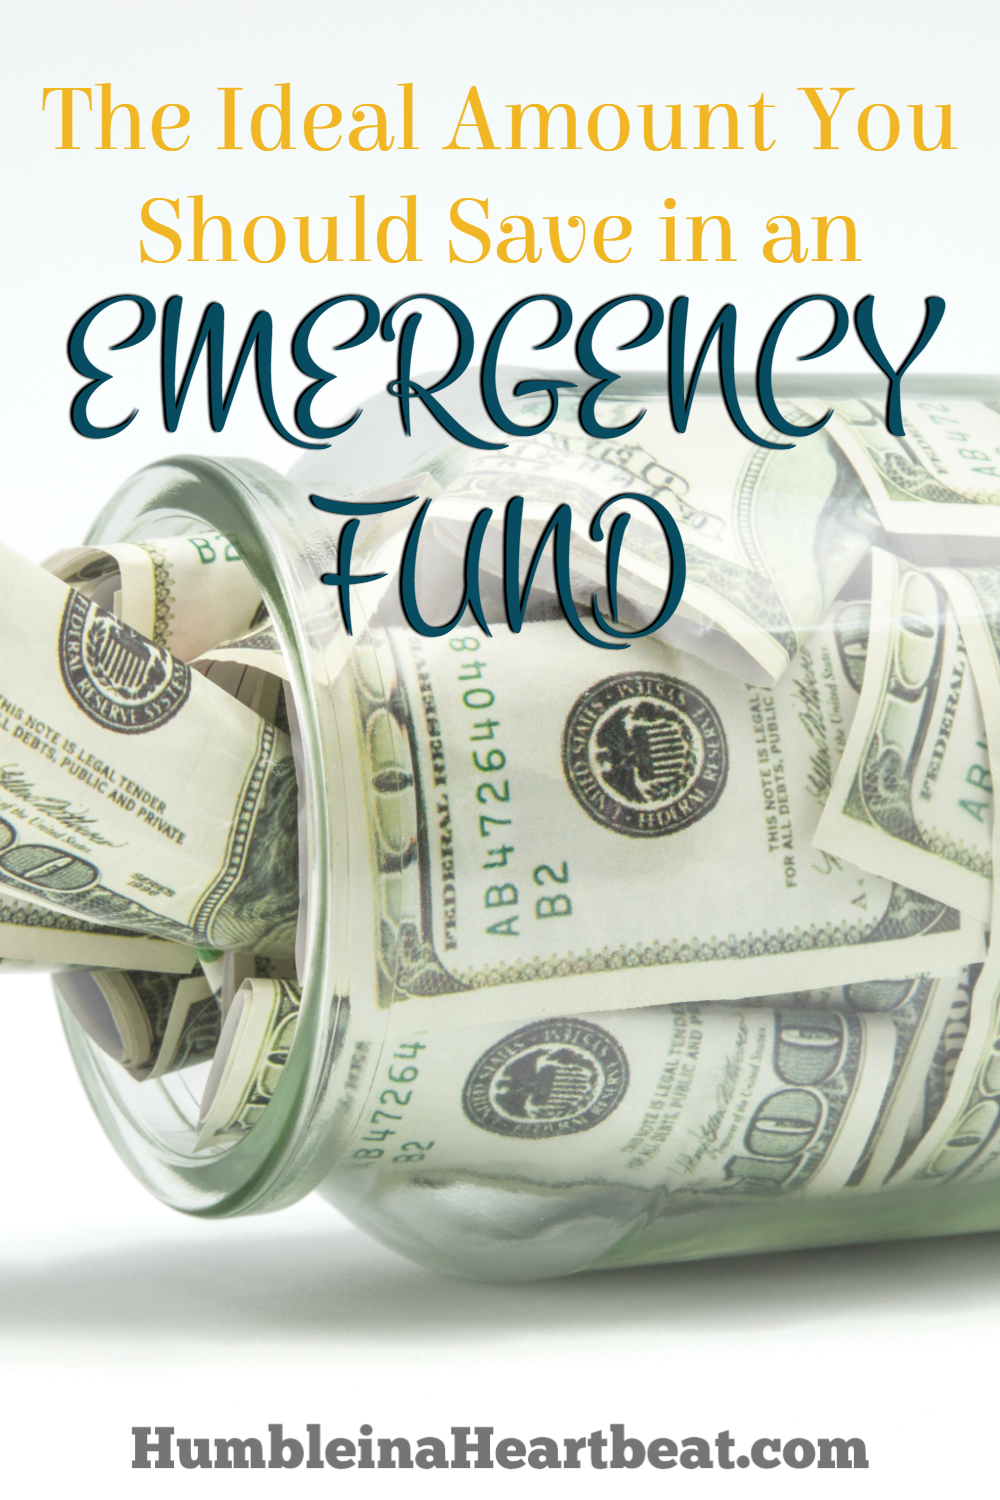 If you were to lose your job or have a medical emergency, would you have enough money in your emergency fund to survive these events? Here is the ideal amount you should be saving so you can stay afloat if the worst happens.